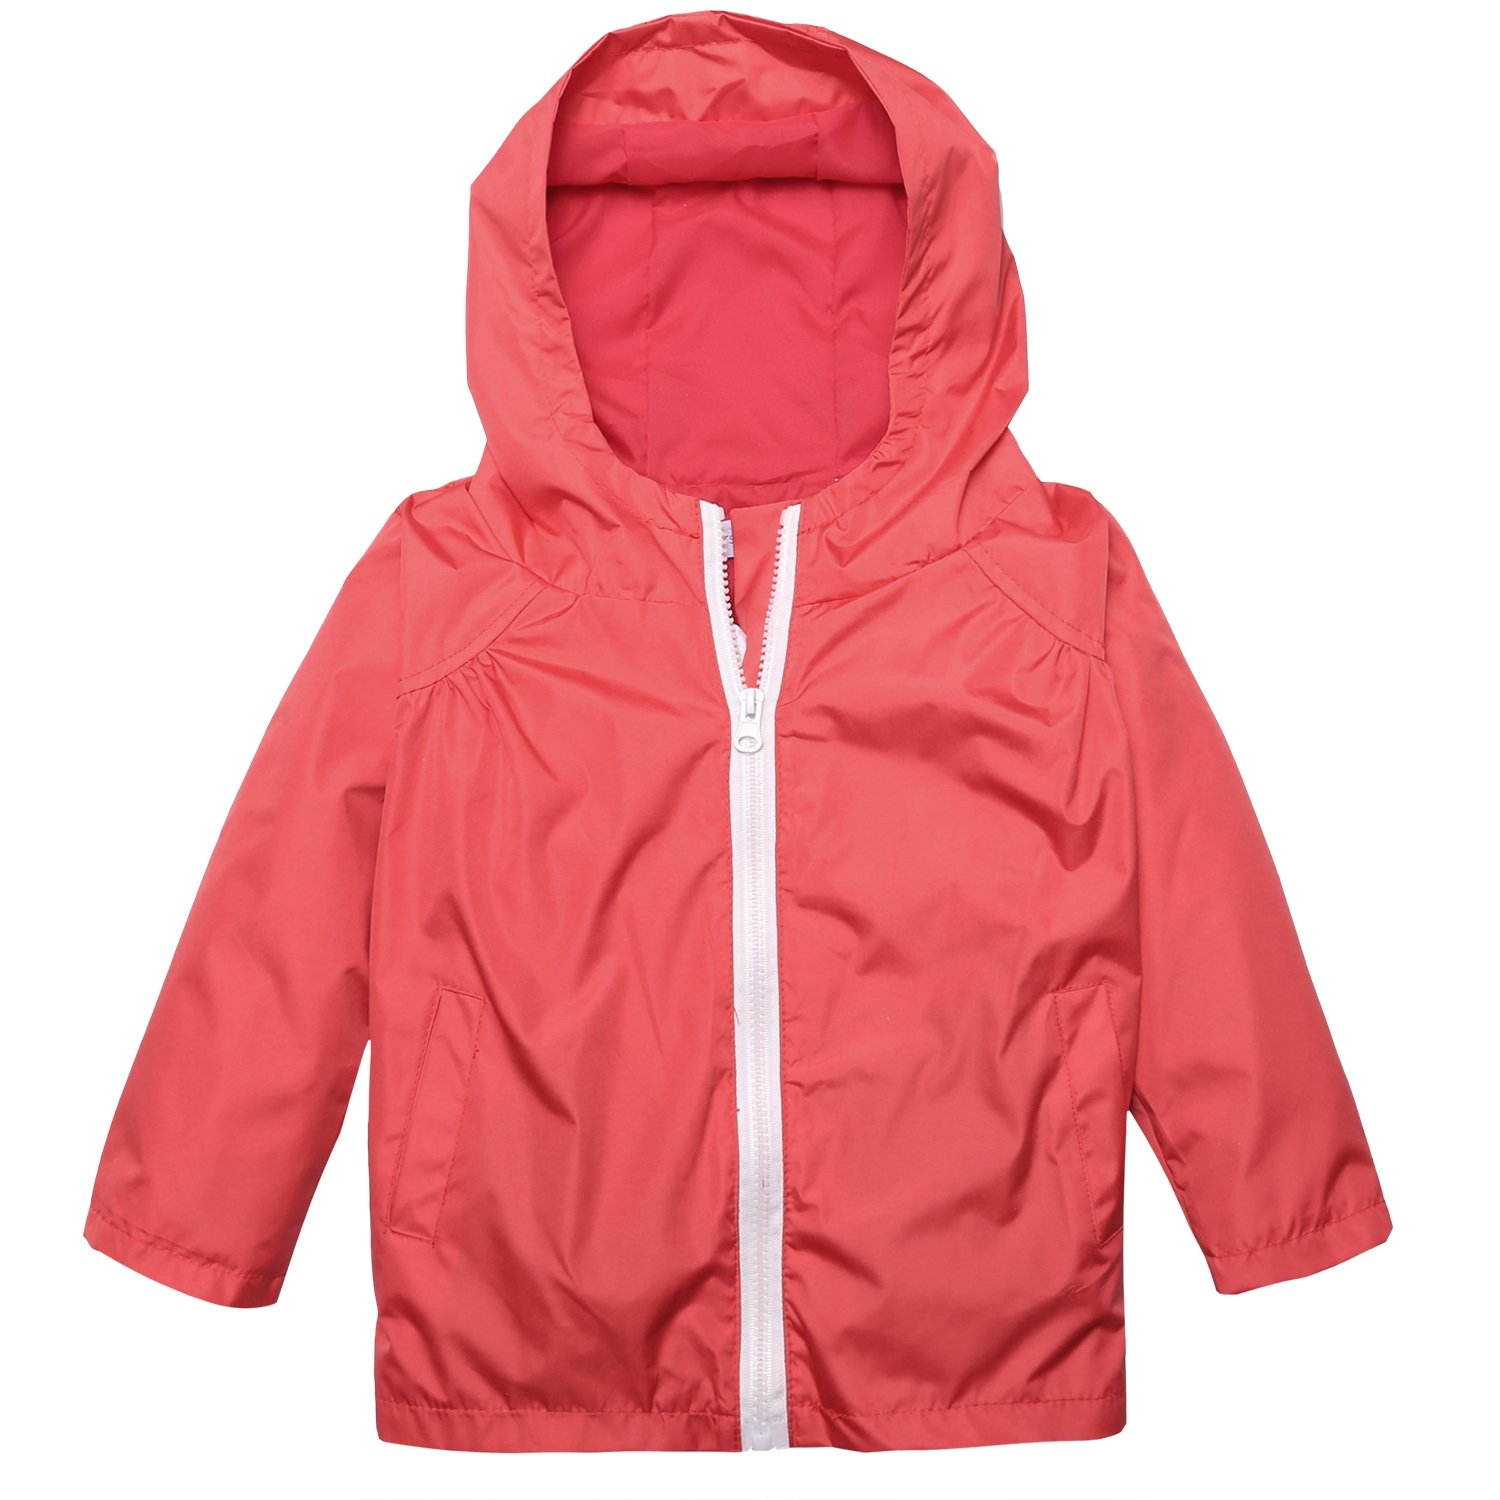 Arshiner Little Kid Waterproof Hooded Coat Jacket Outwear Raincoat,Red,Size 90 by Arshiner